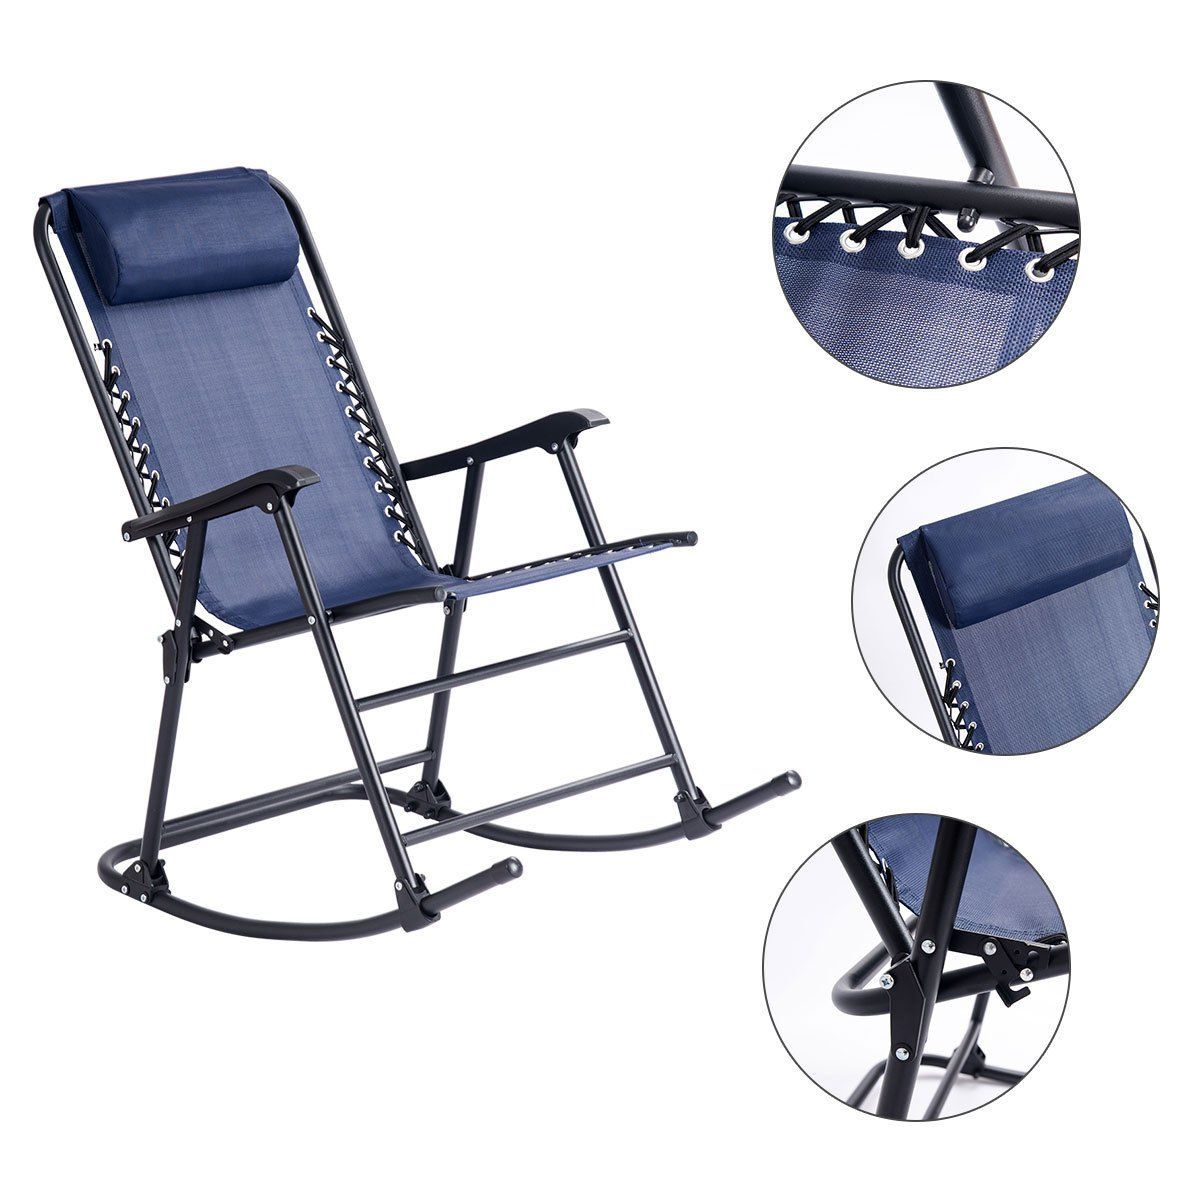 Camping Rocking Chair Goplus Folding Rocking Chair W Headrest Outdoor Portable Zero